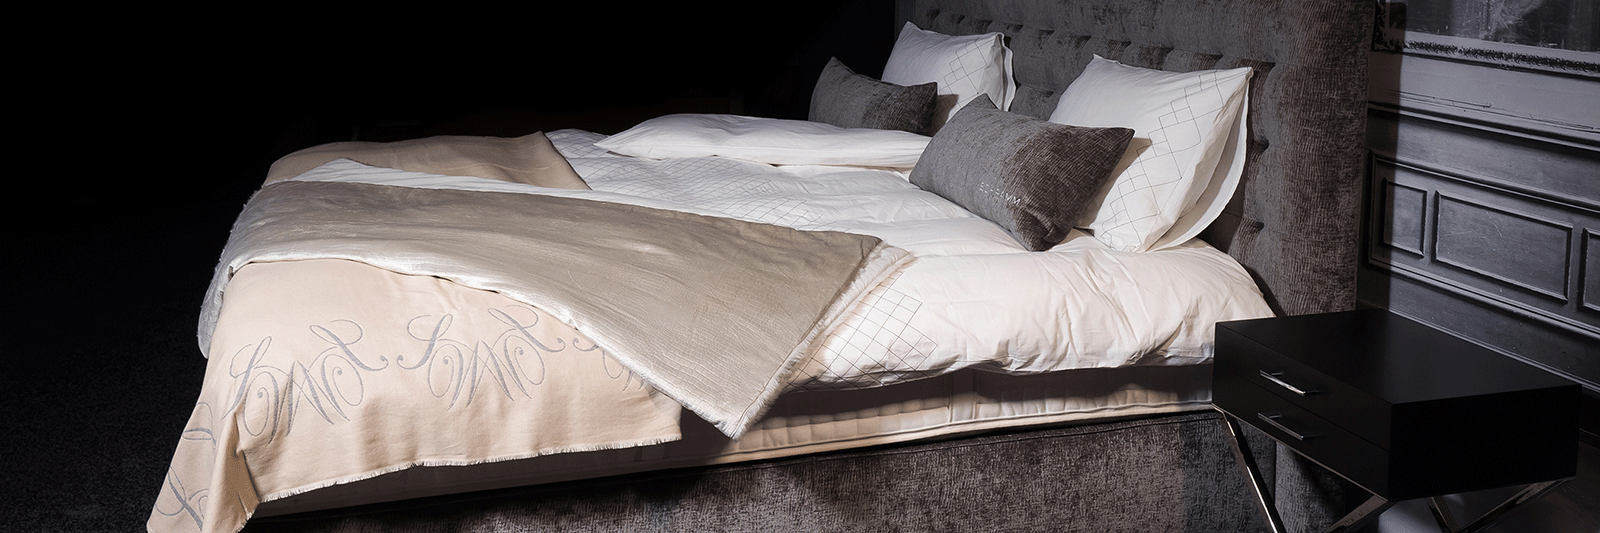 sleep_lounge_bed_zijkant